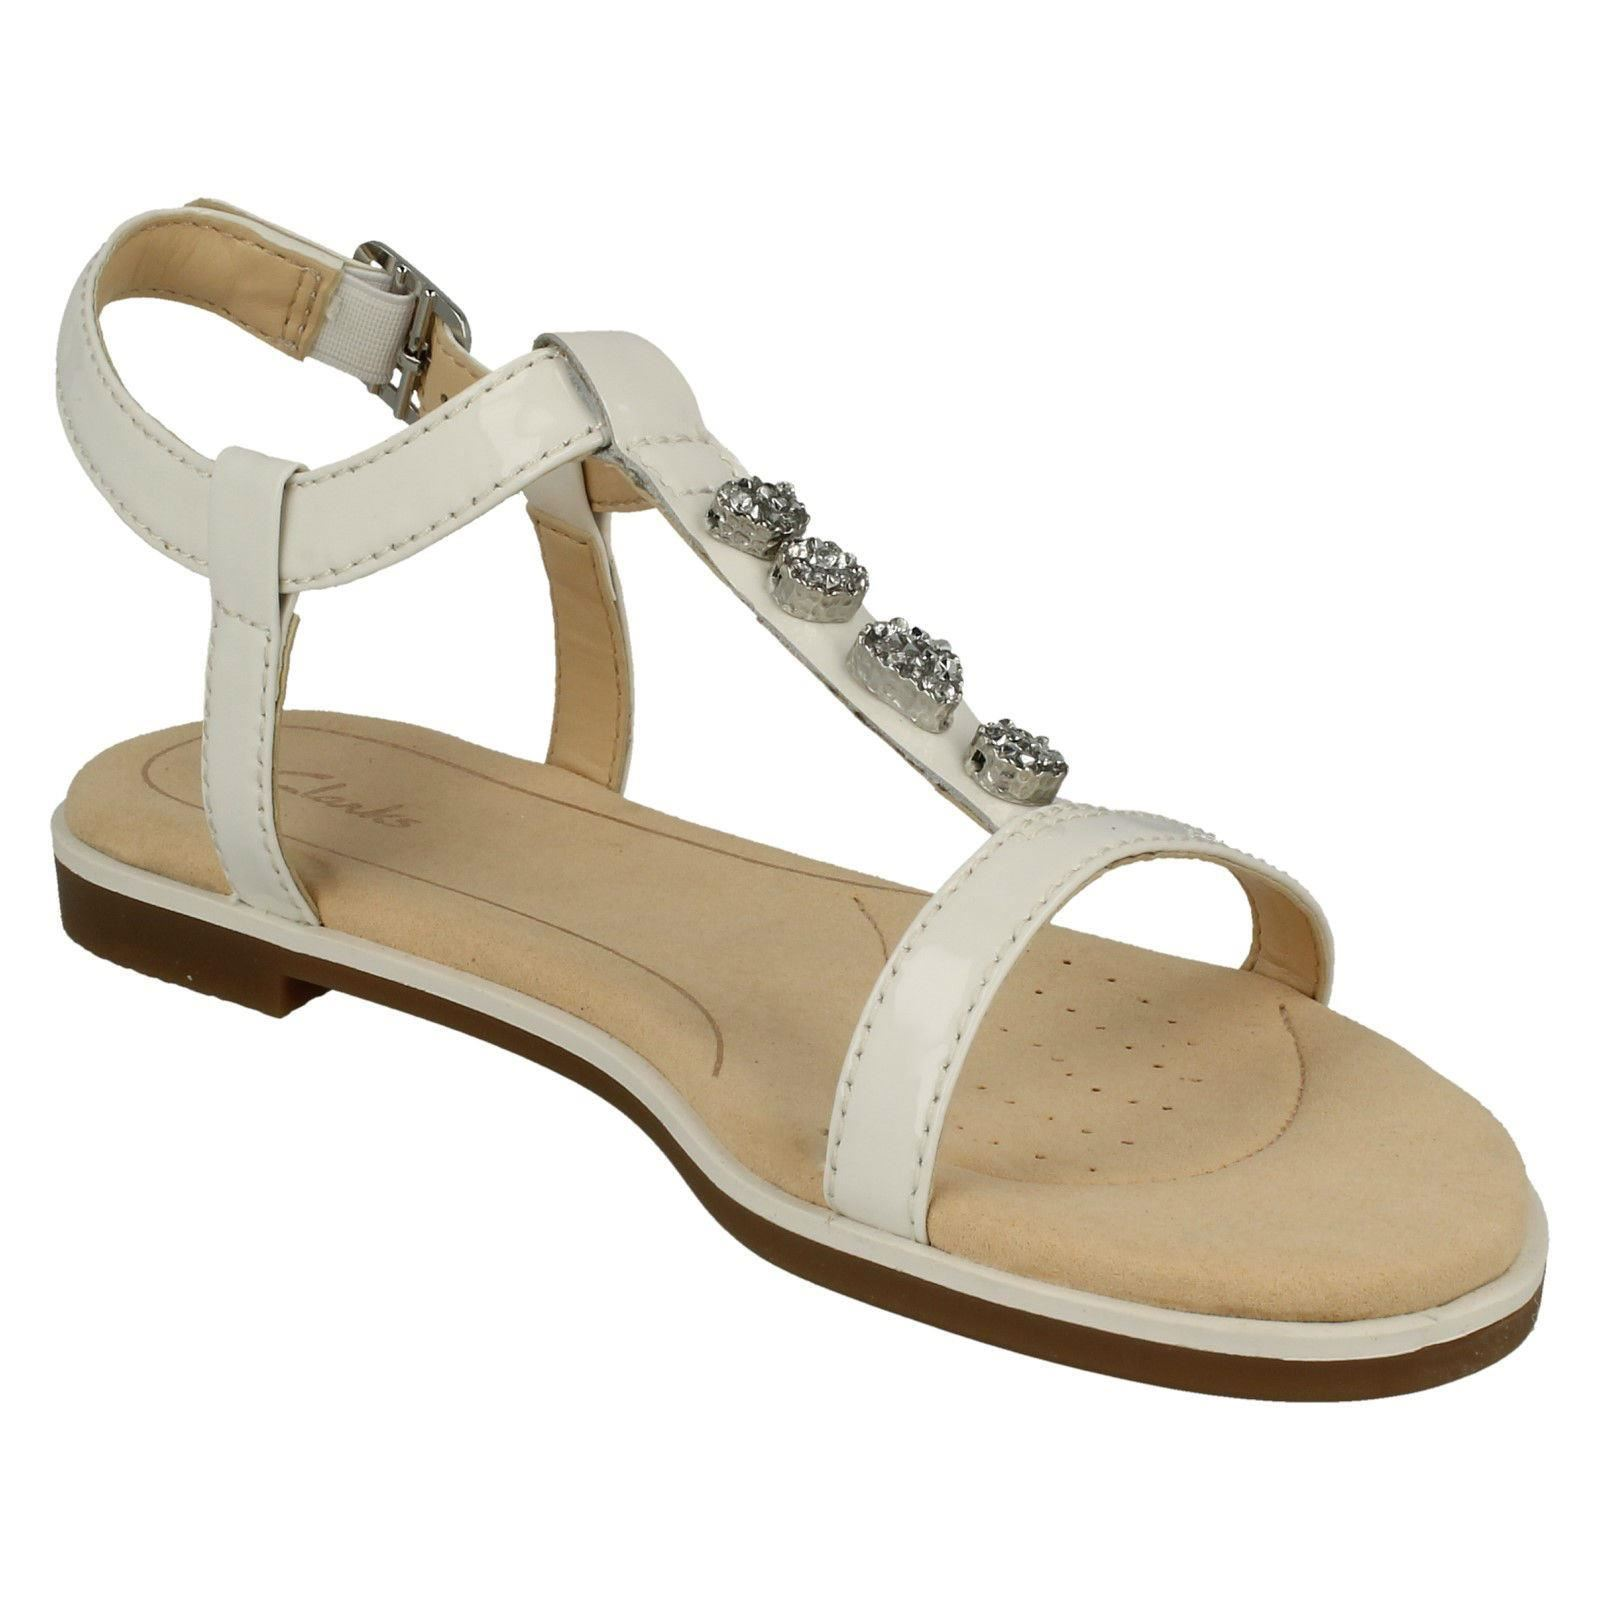 b533cd0bea266a Clarks Ladies Casual Slingback Sandals - Bay Blossom White UK 4 D. About  this product. Picture 1 of 8  Picture 2 of 8  Picture 3 of 8 ...